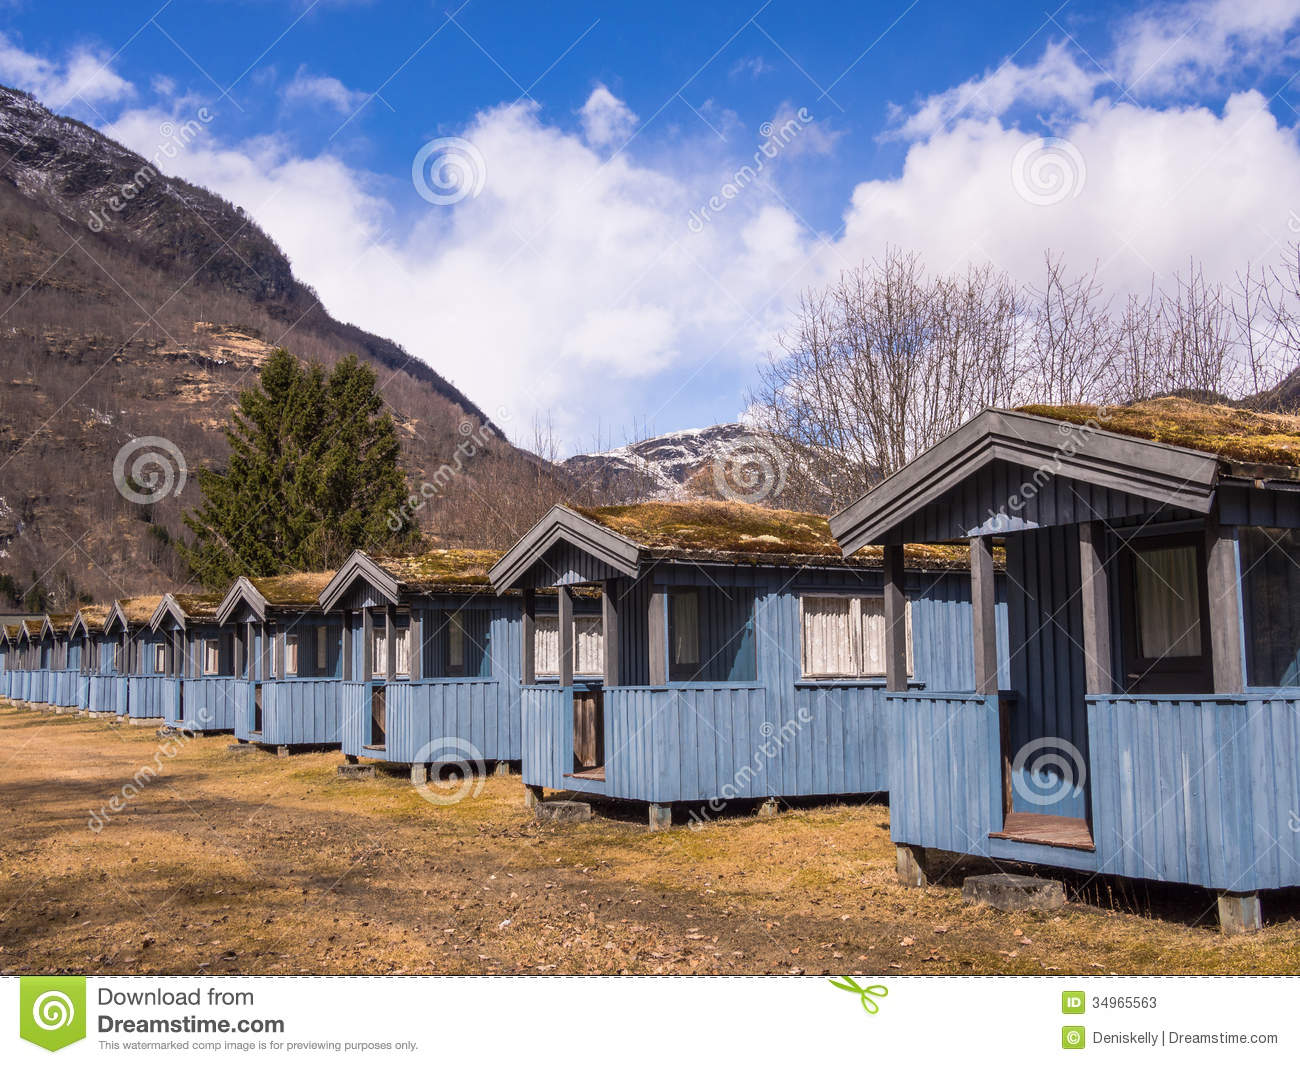 Camping cabins in the mountains stock photos image 34965563 for Camp sites with cabins